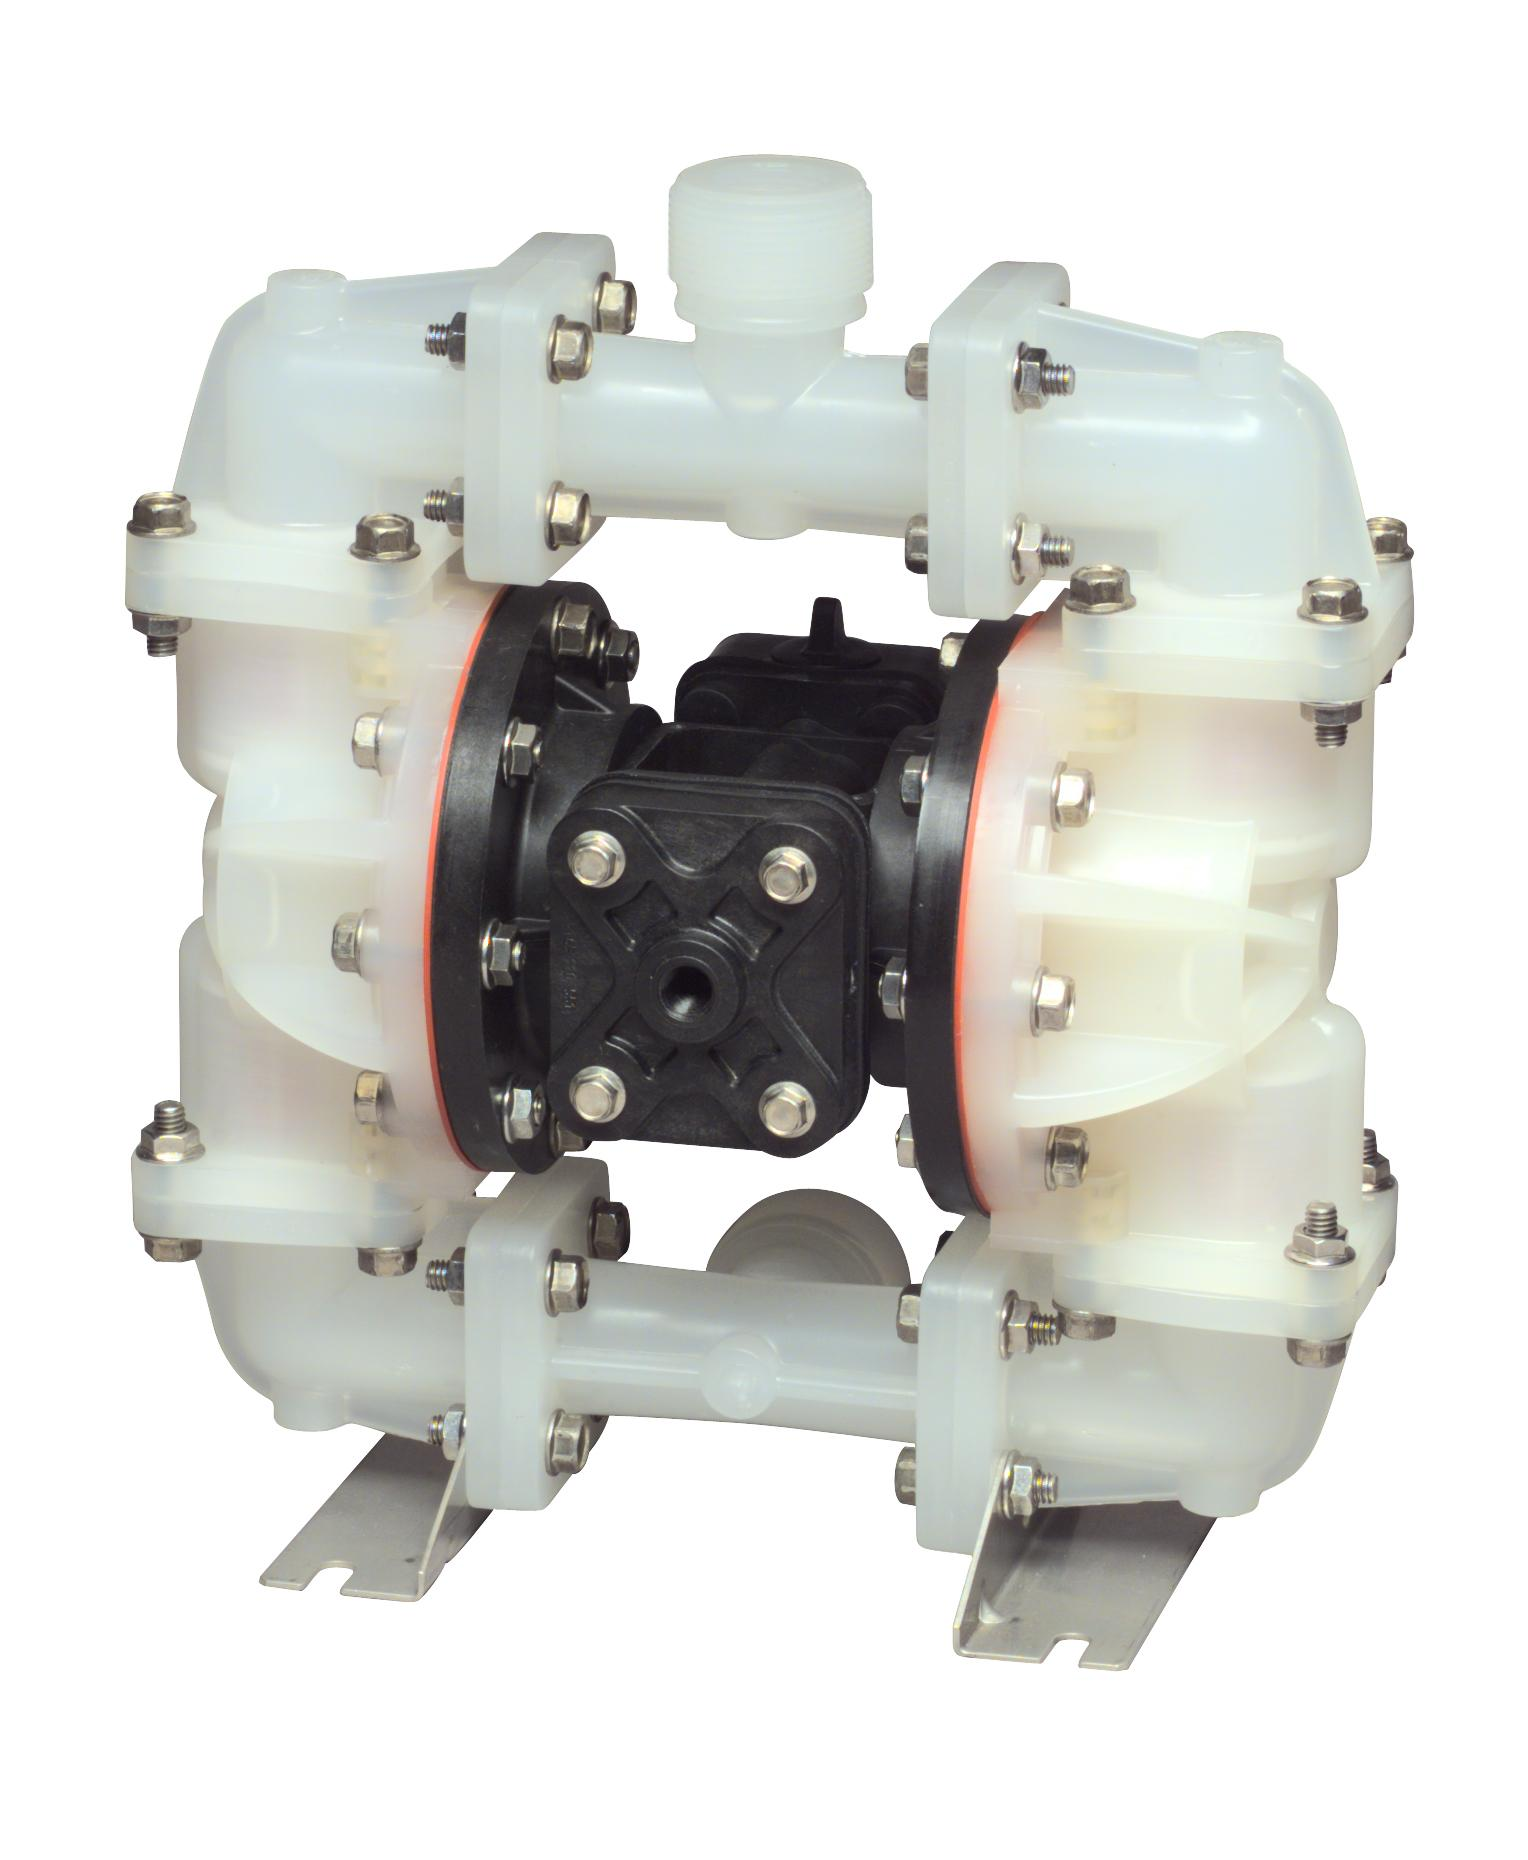 Non-metal-bodied AODD pump